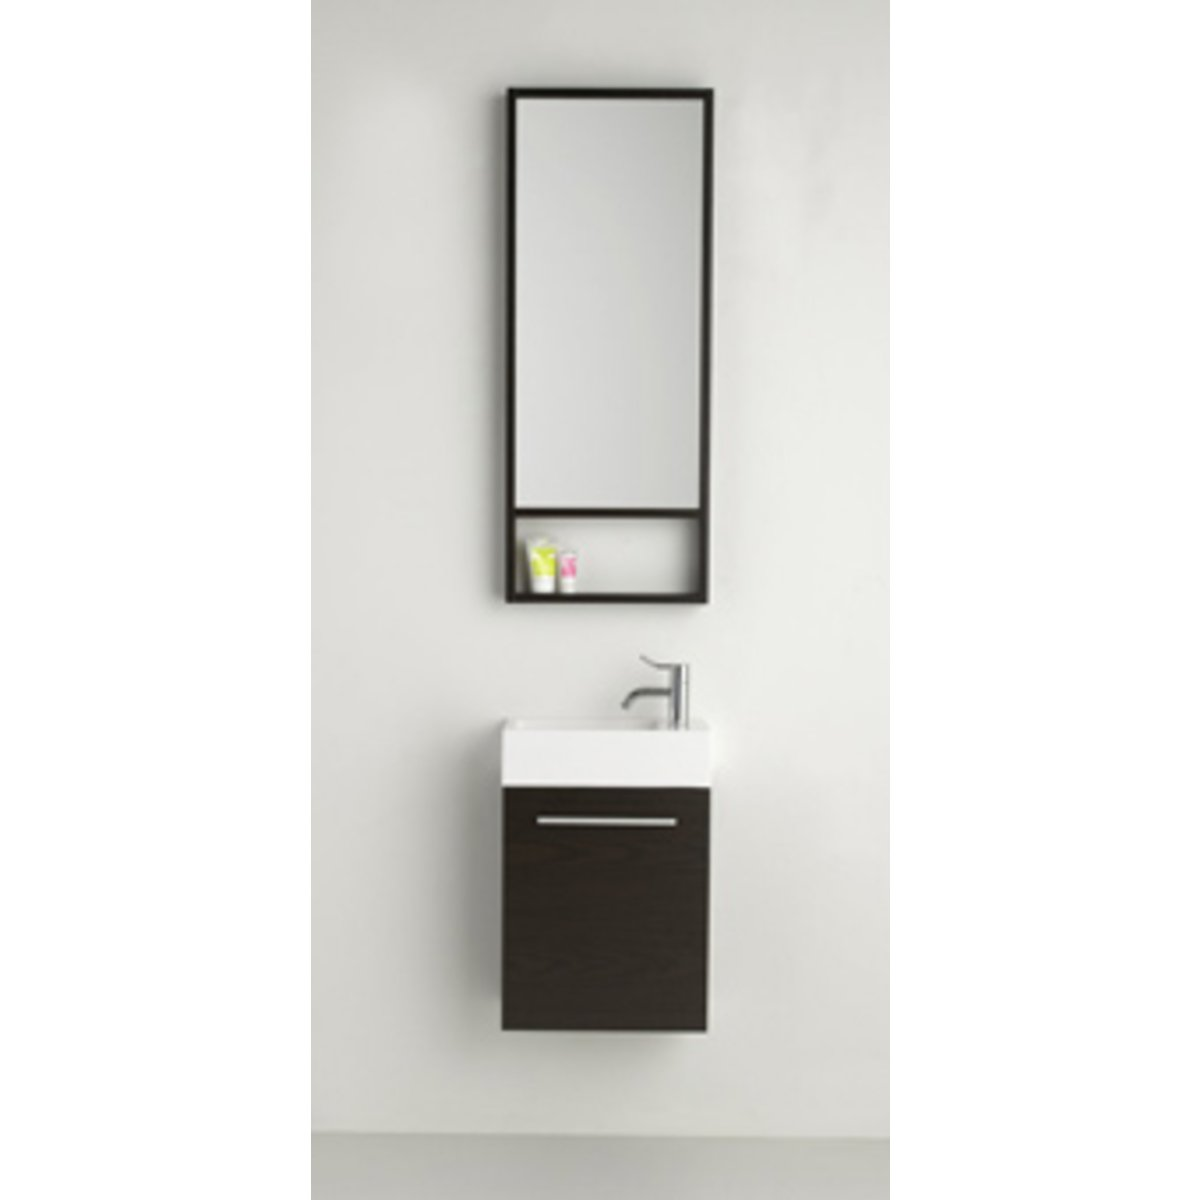 plieger slim toiletmeubel 40cm met spiegel wenge 0957171. Black Bedroom Furniture Sets. Home Design Ideas